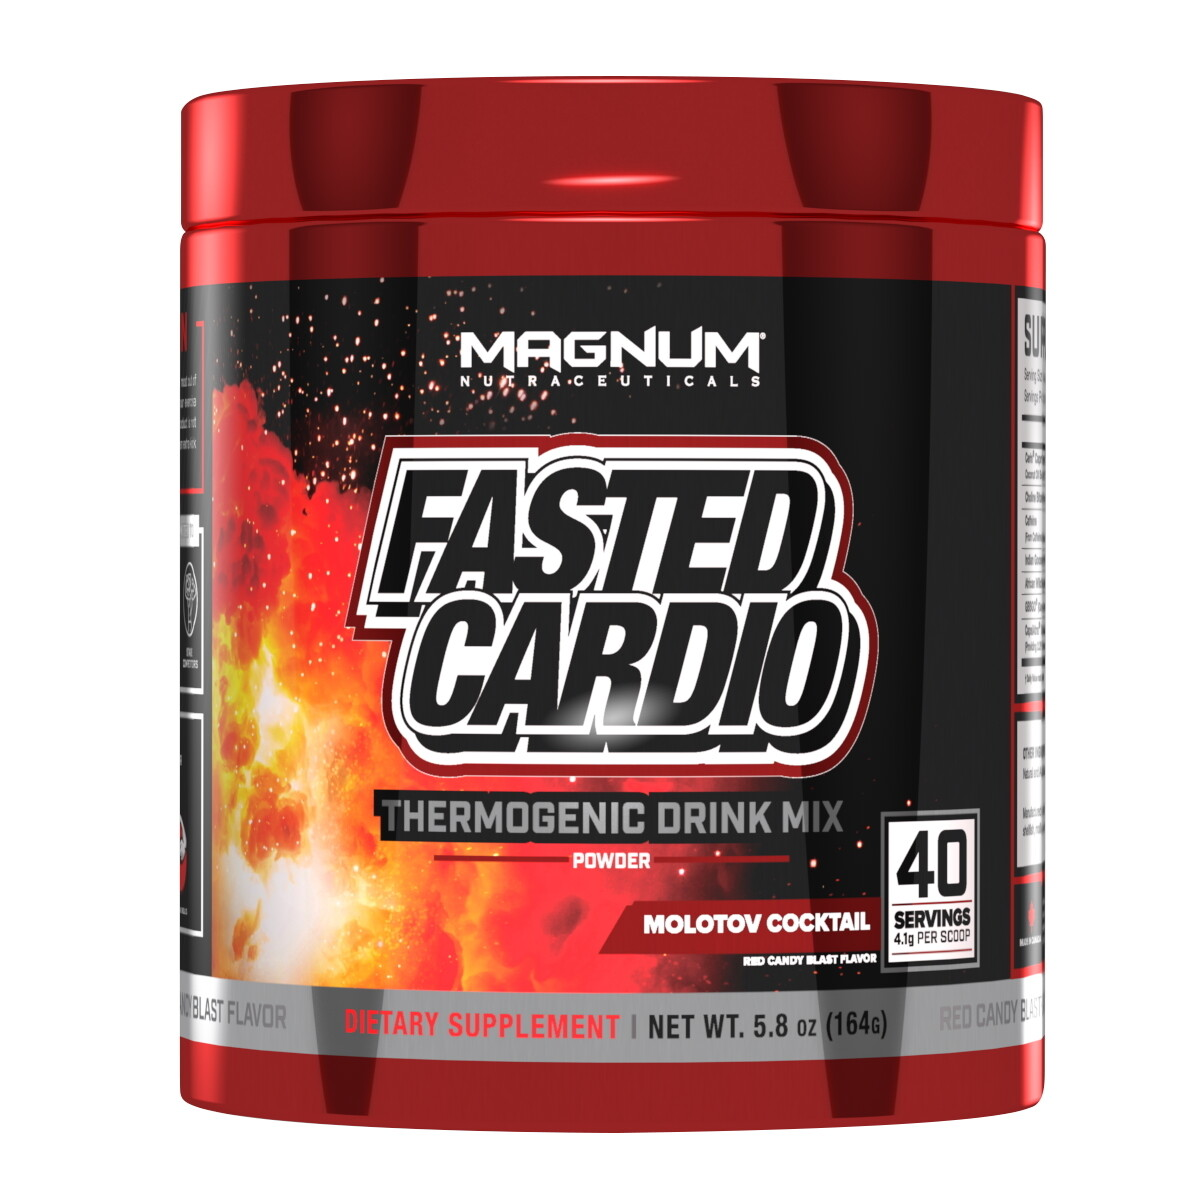 Magnum Fasted Cardio - Molotov Cocktail